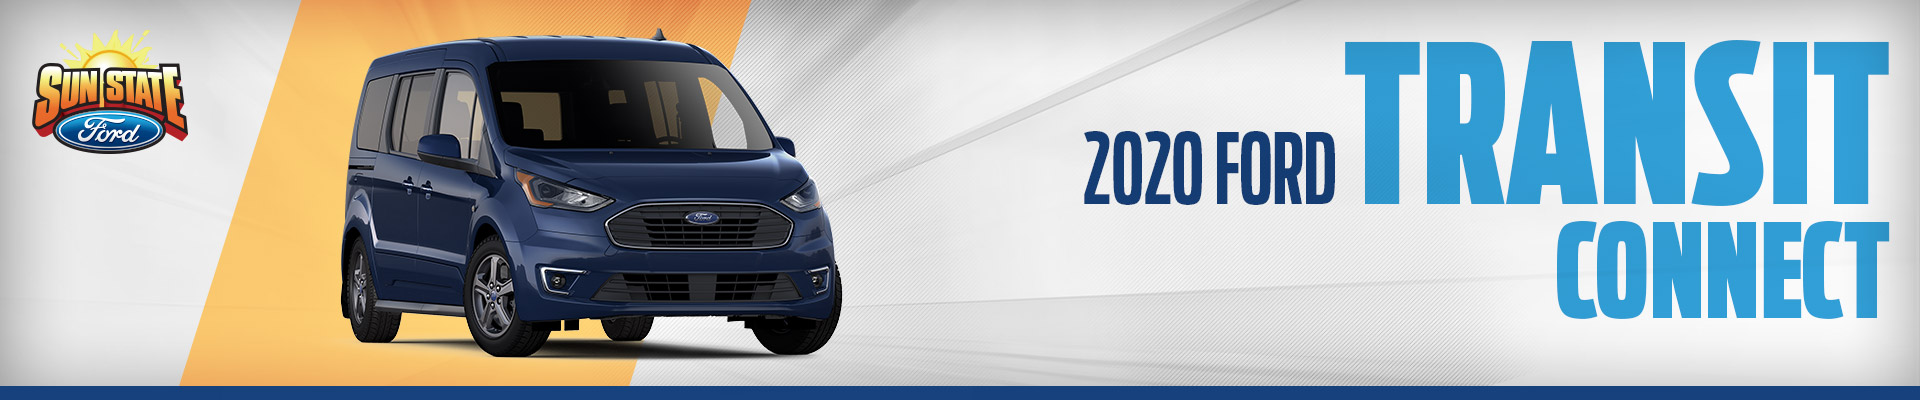 2020 Ford Transit Connect - Sun State Ford - Orlando, FL